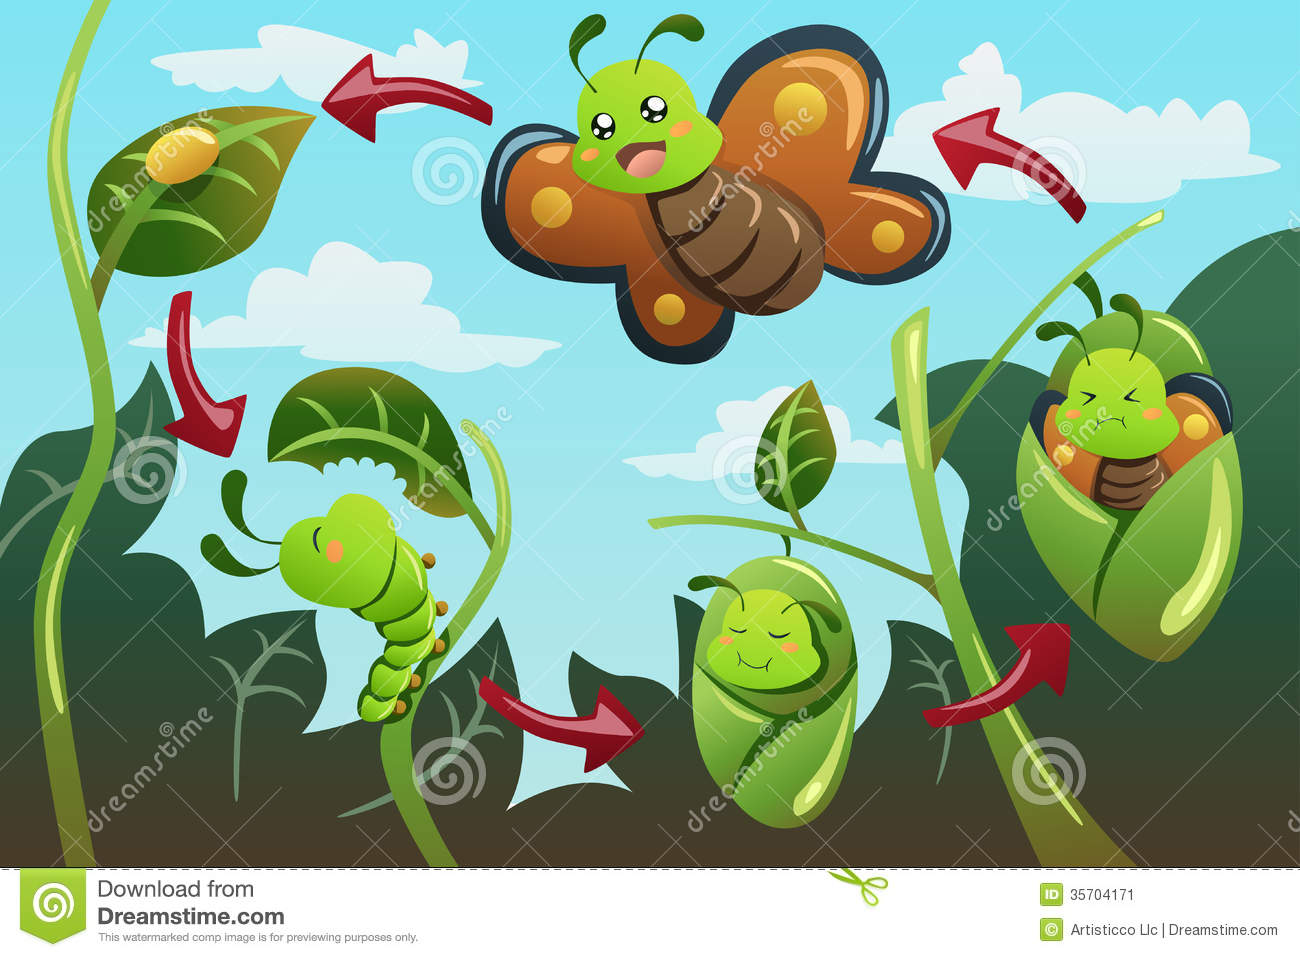 life-cycle-butterfly-vector-illustration-35704171.jpg